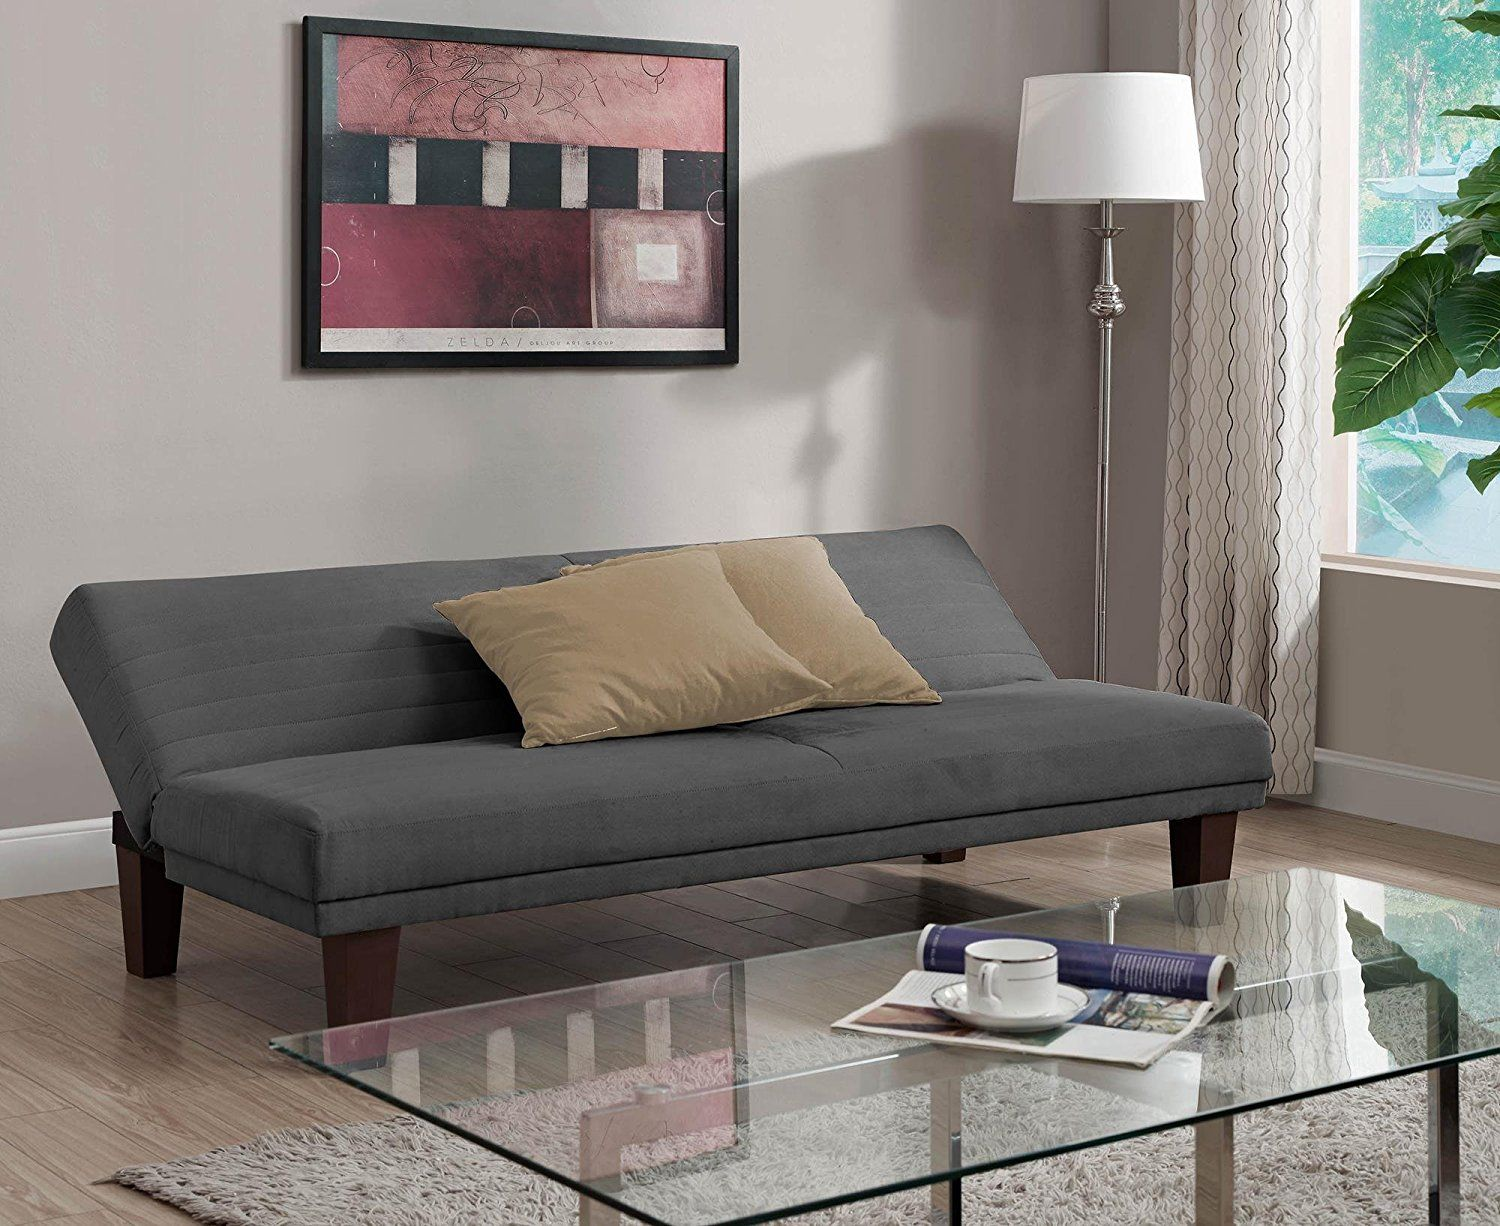 the best comfortable futons for sleeping review and buying guide in